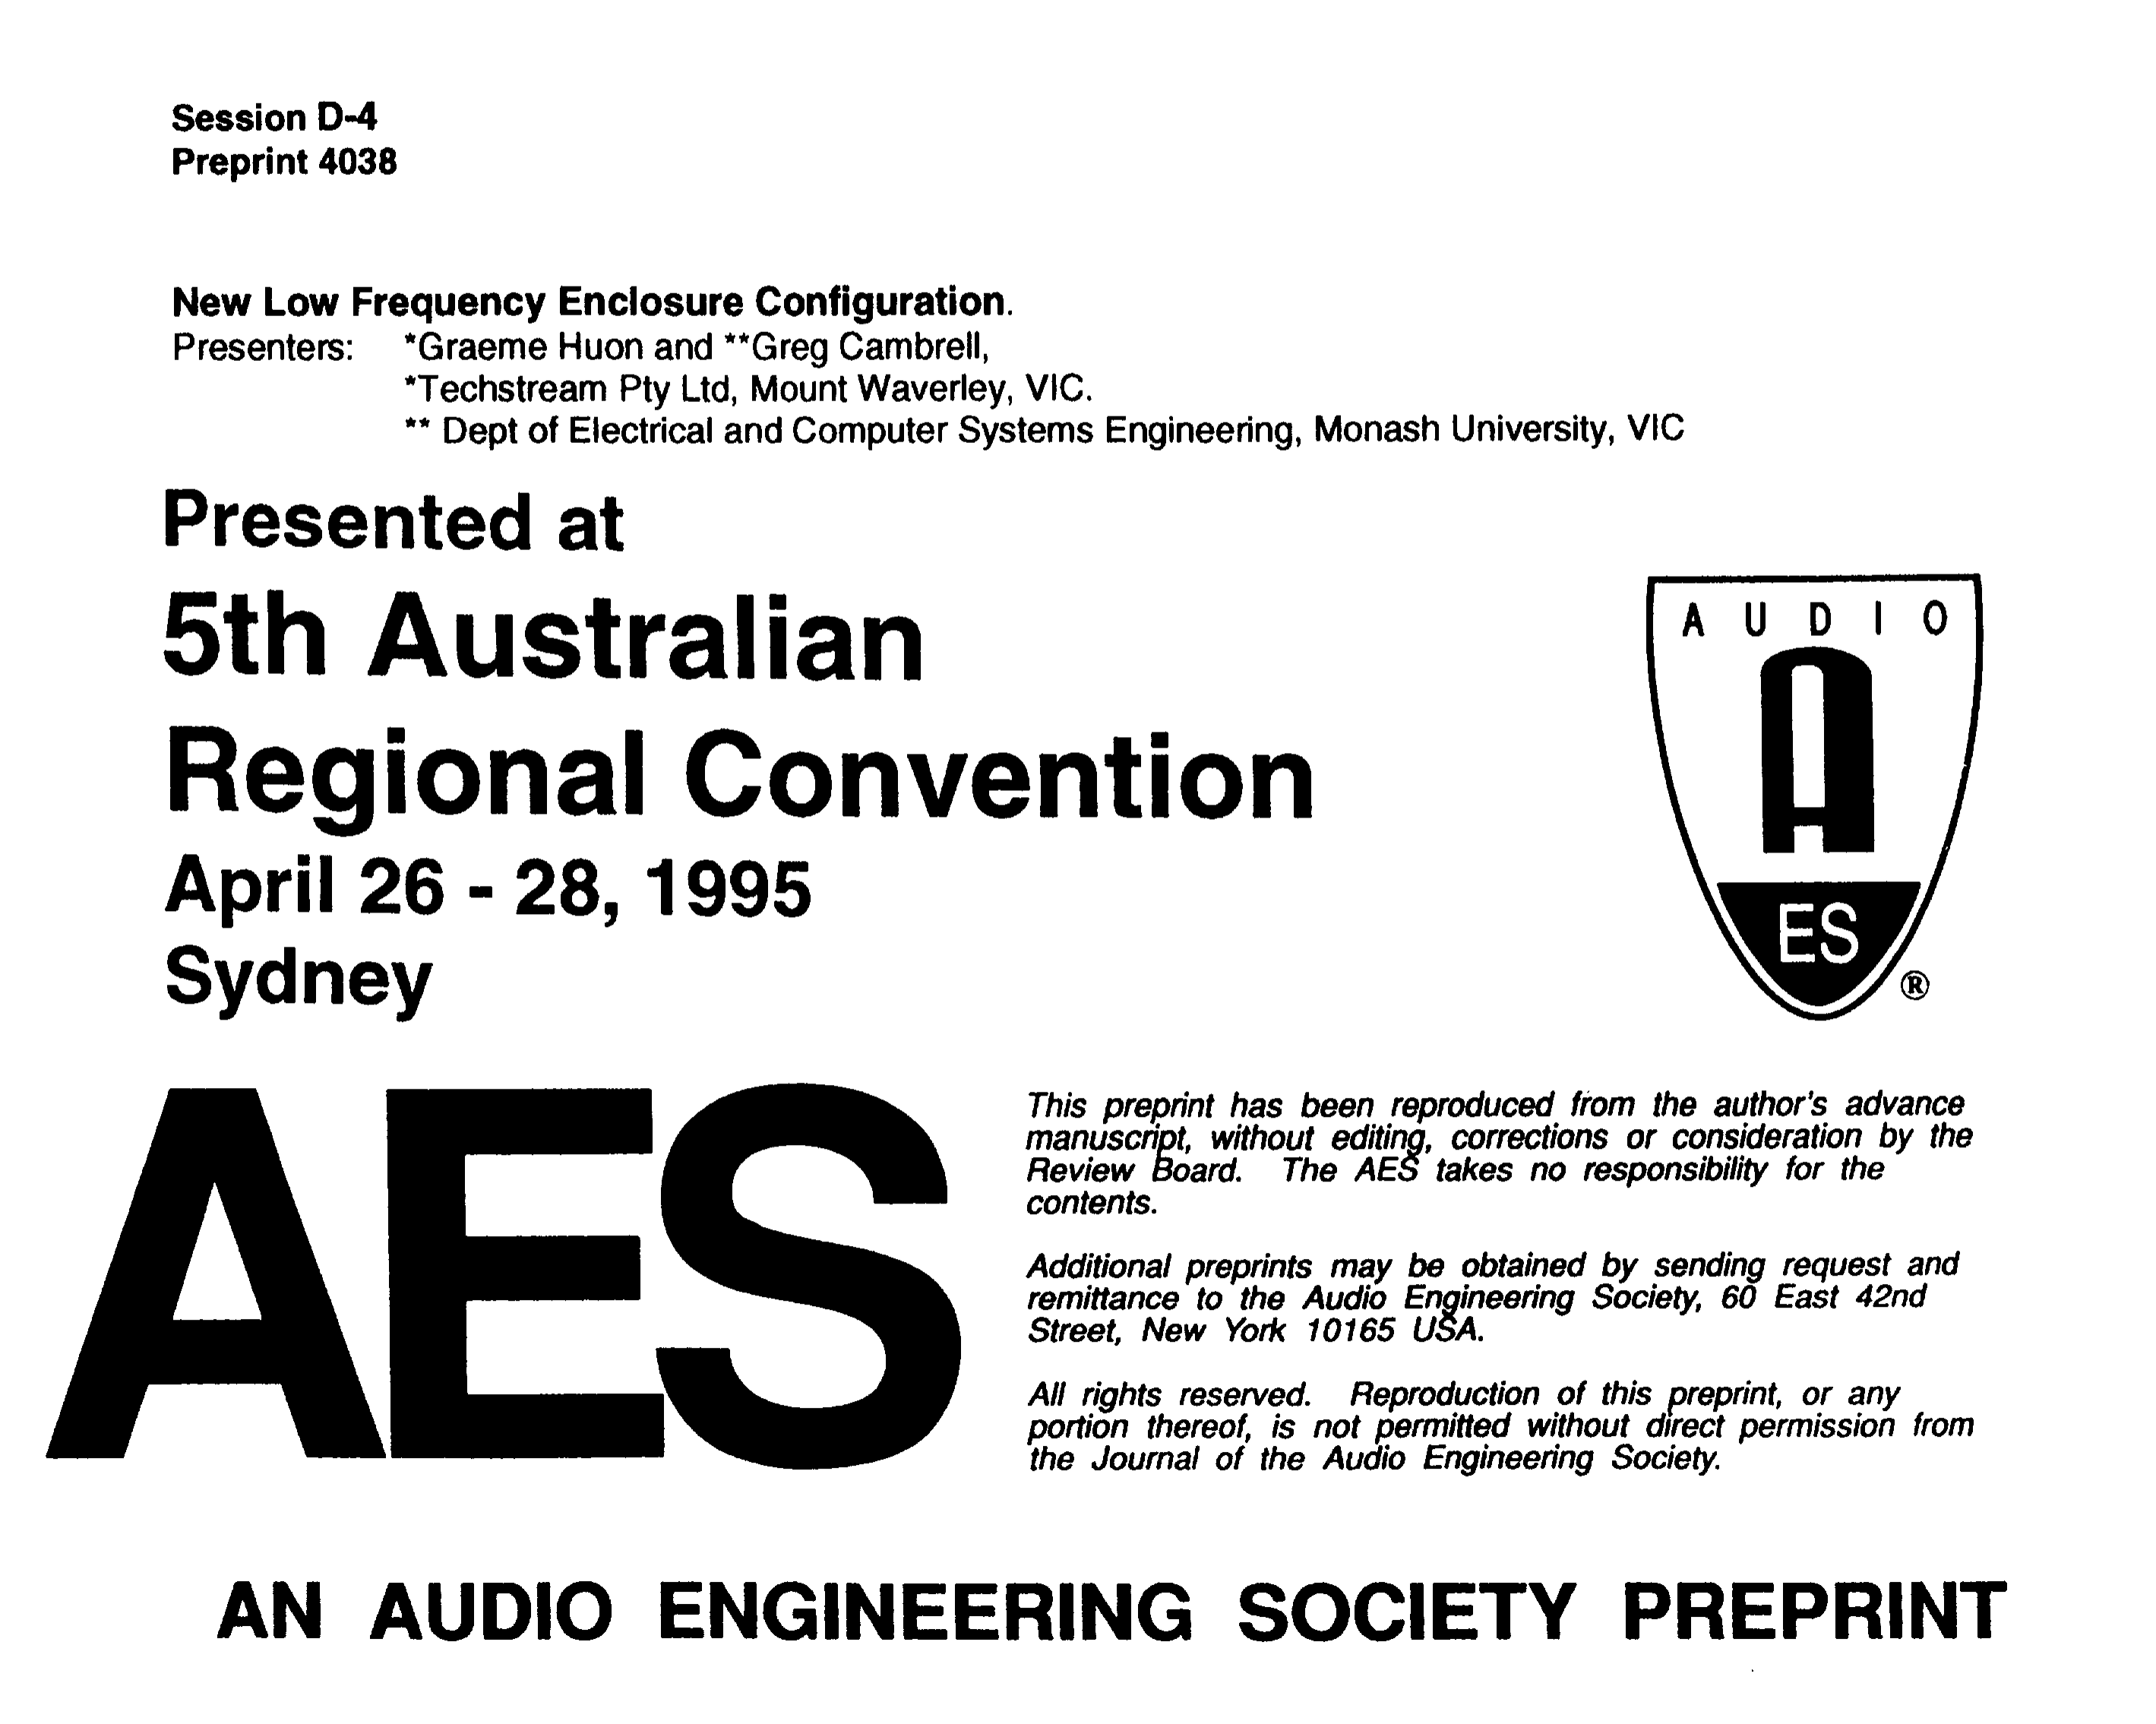 Aes E Library New Low Frequency Enclosure Configuration Synthetic Inductor Based High Pass Audio Filter Circuit Design